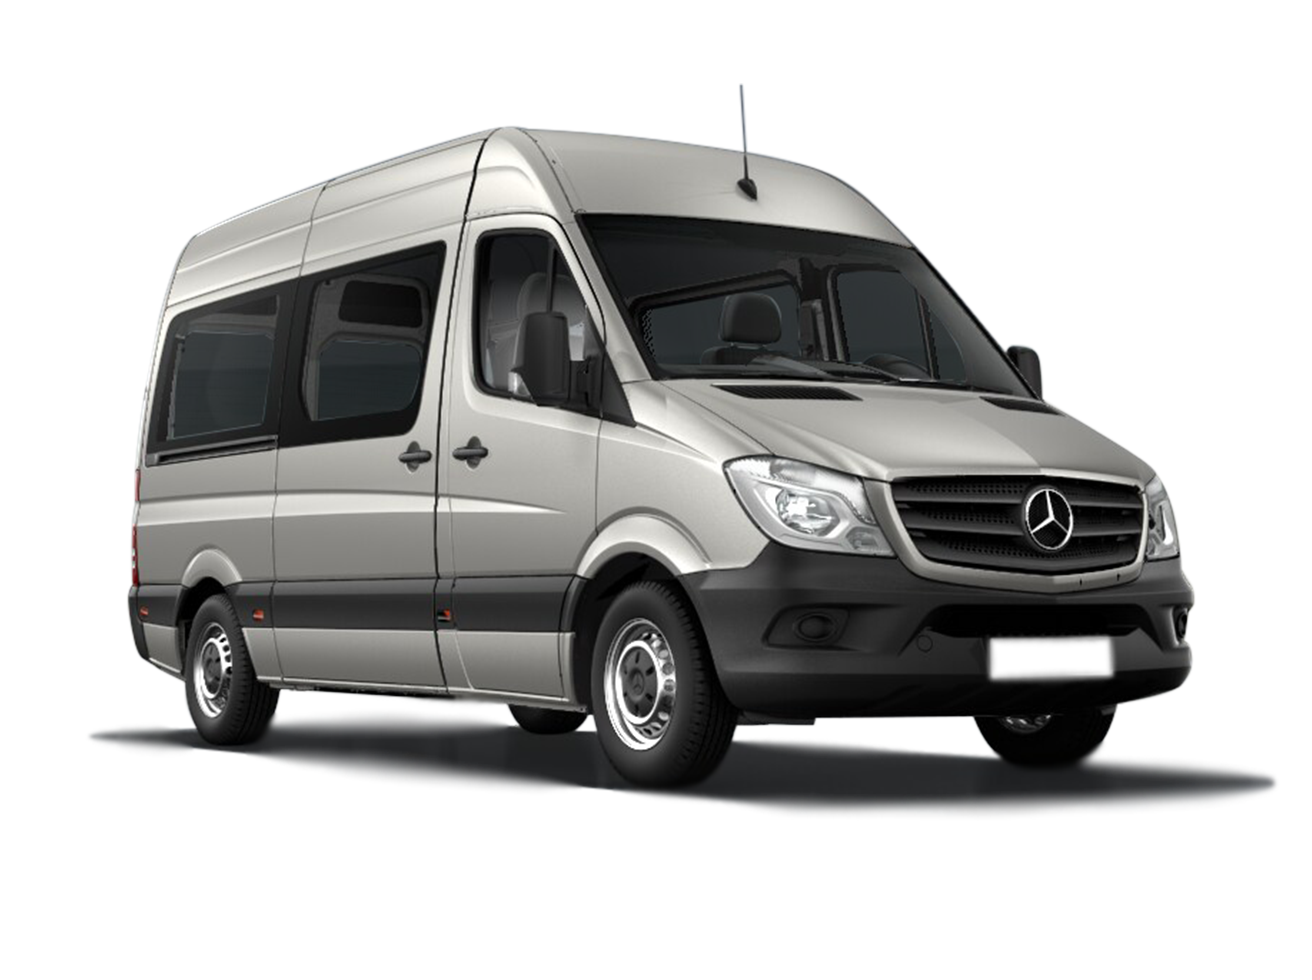 MERCEDES-BENZ - SPRINTER - 2.2 CDI DIESEL VAN 415 TA LONGO 10L MANUAL